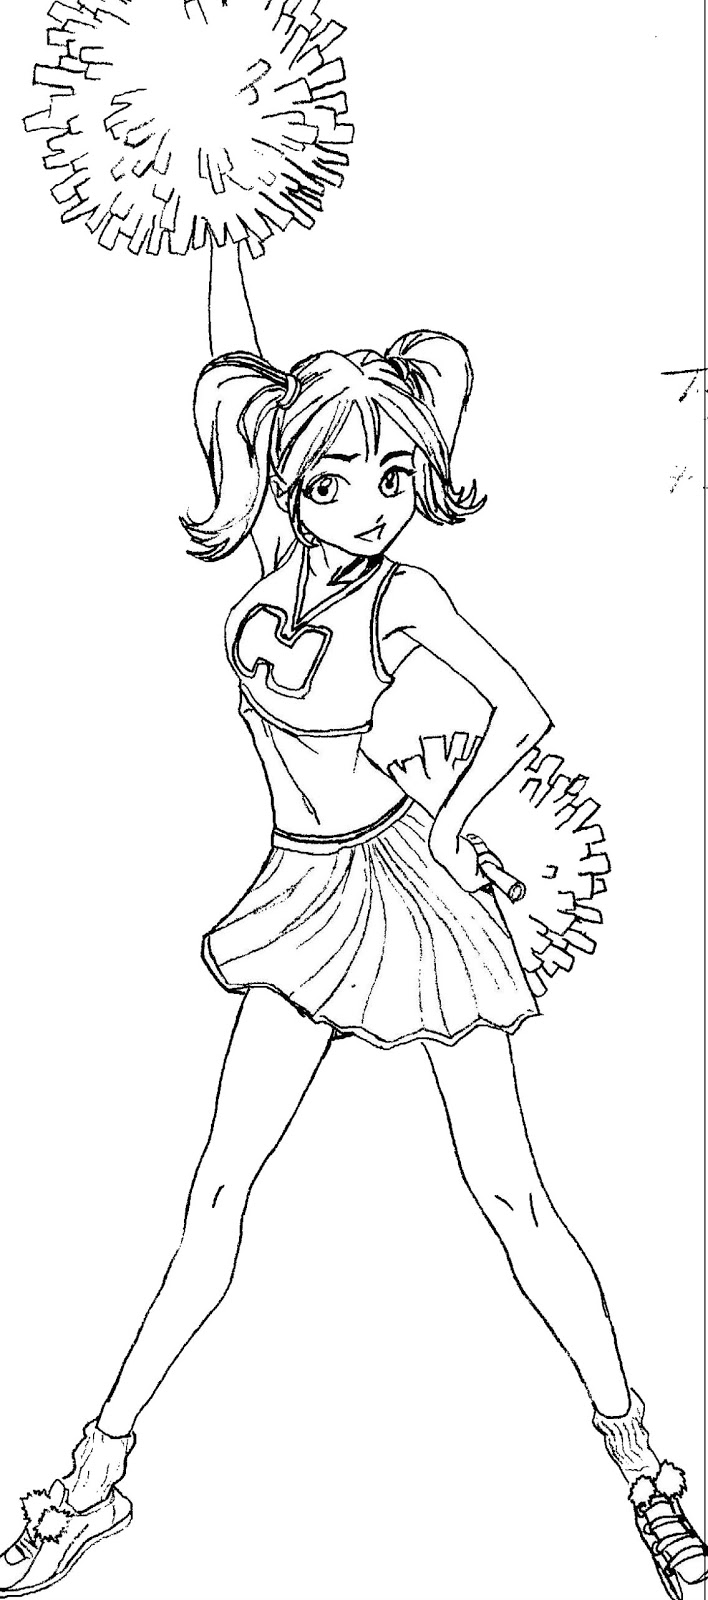 Cheerleaders dance coloring page source http www coloring kids net